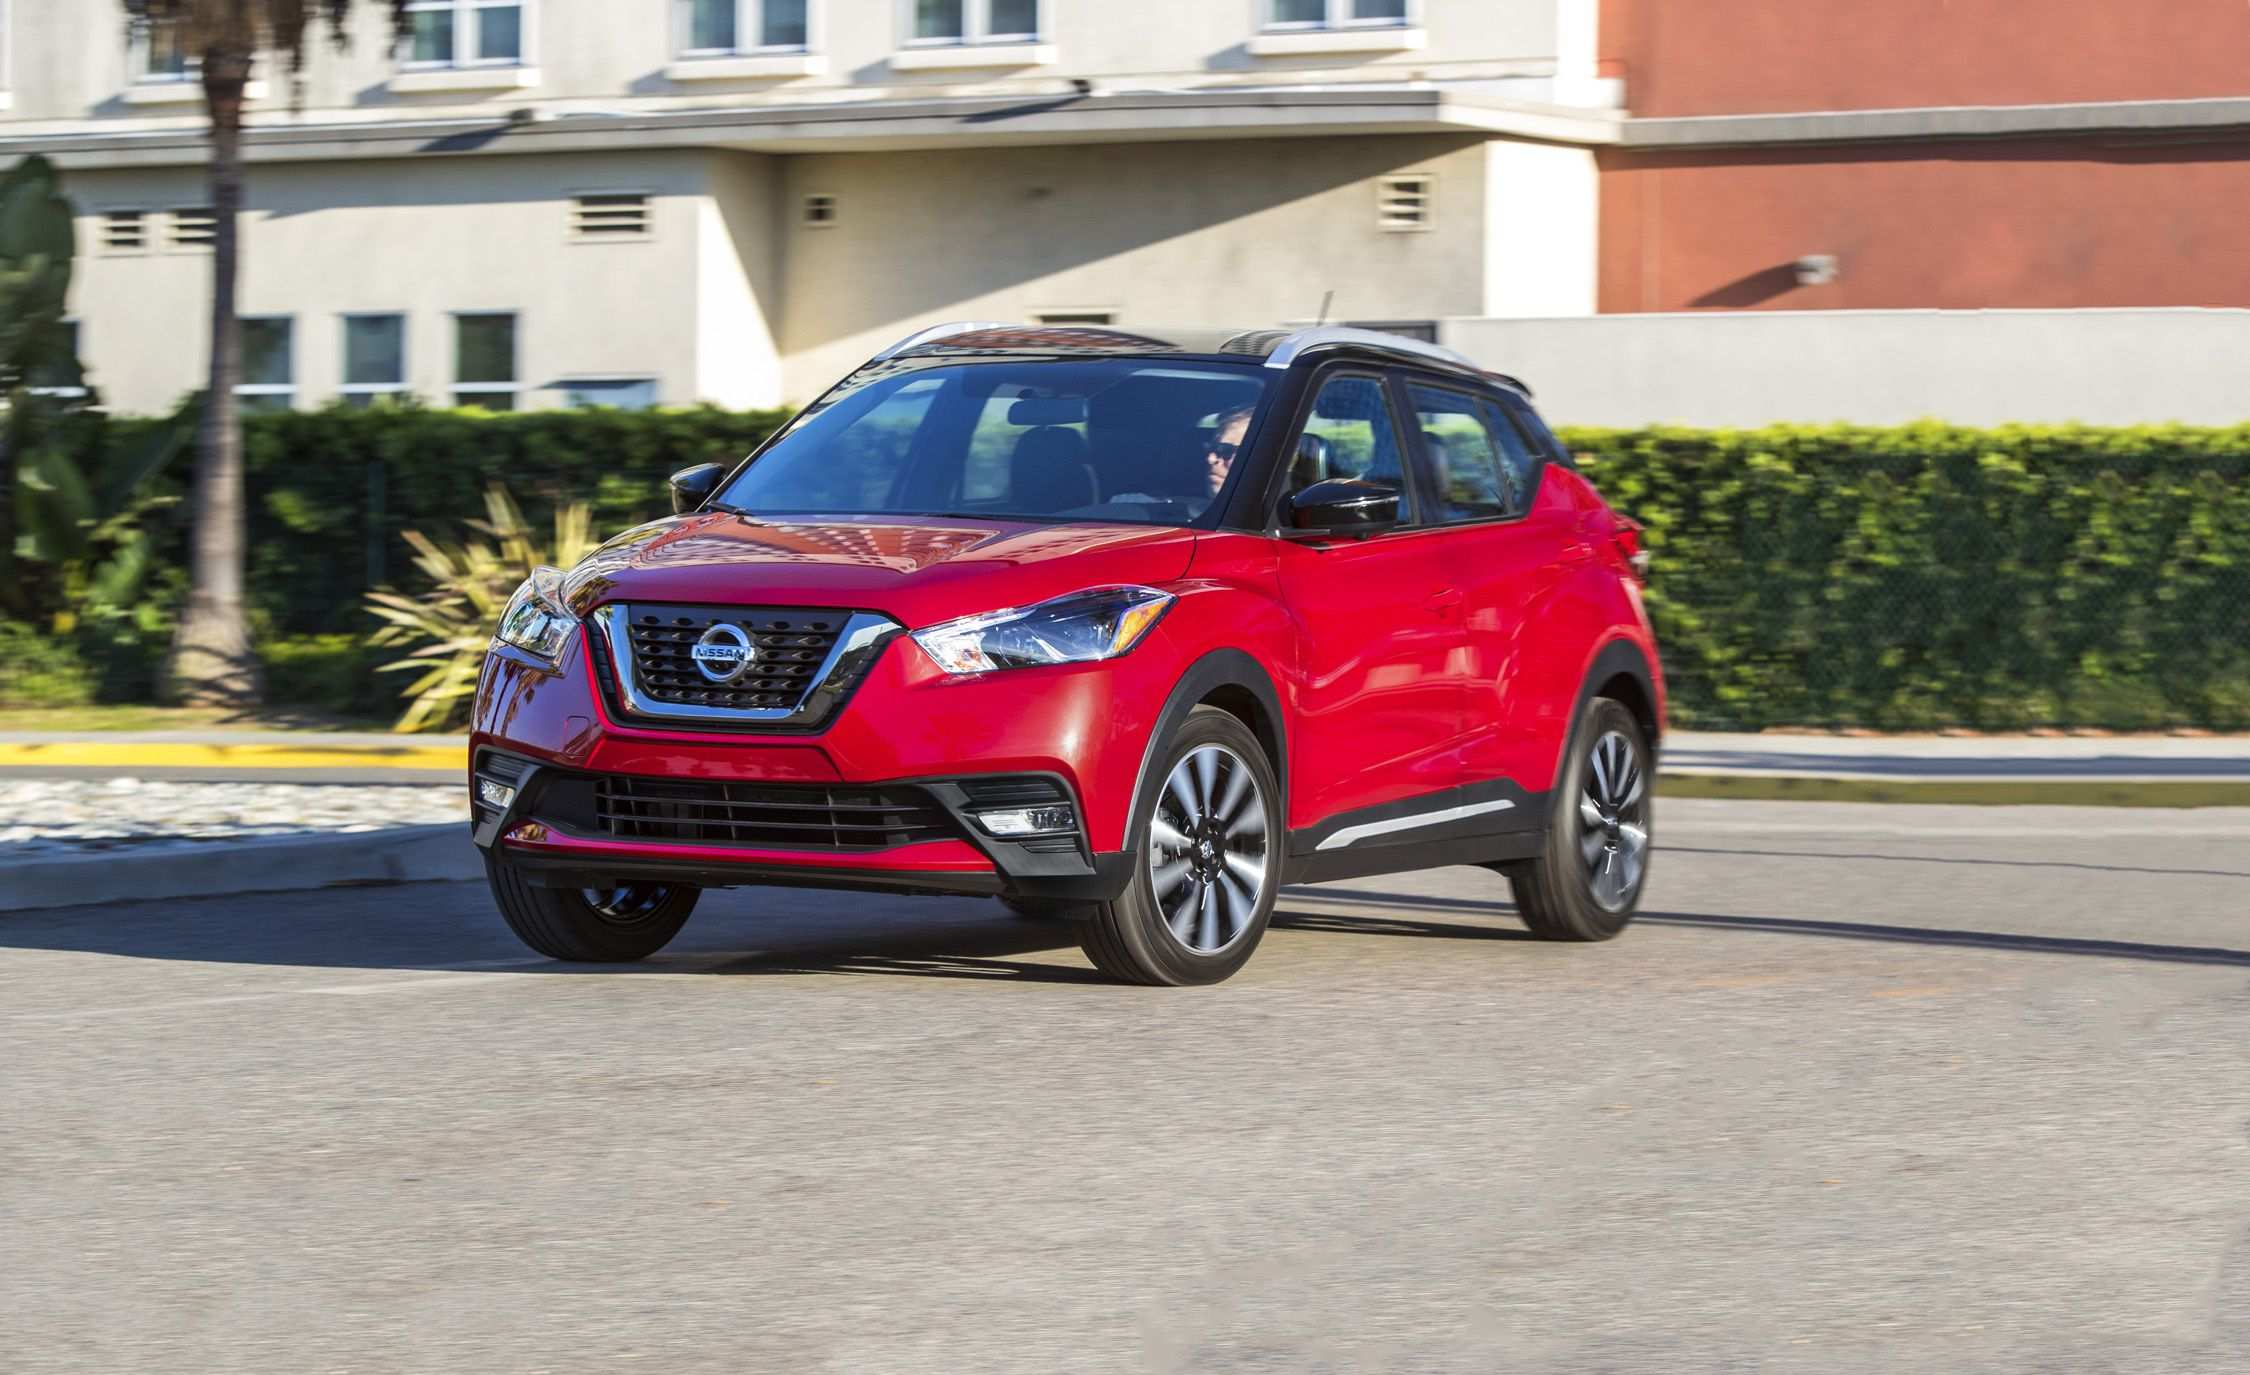 84 Great Nissan Kicks 2019 Preco Specs And Review Style for Nissan Kicks 2019 Preco Specs And Review